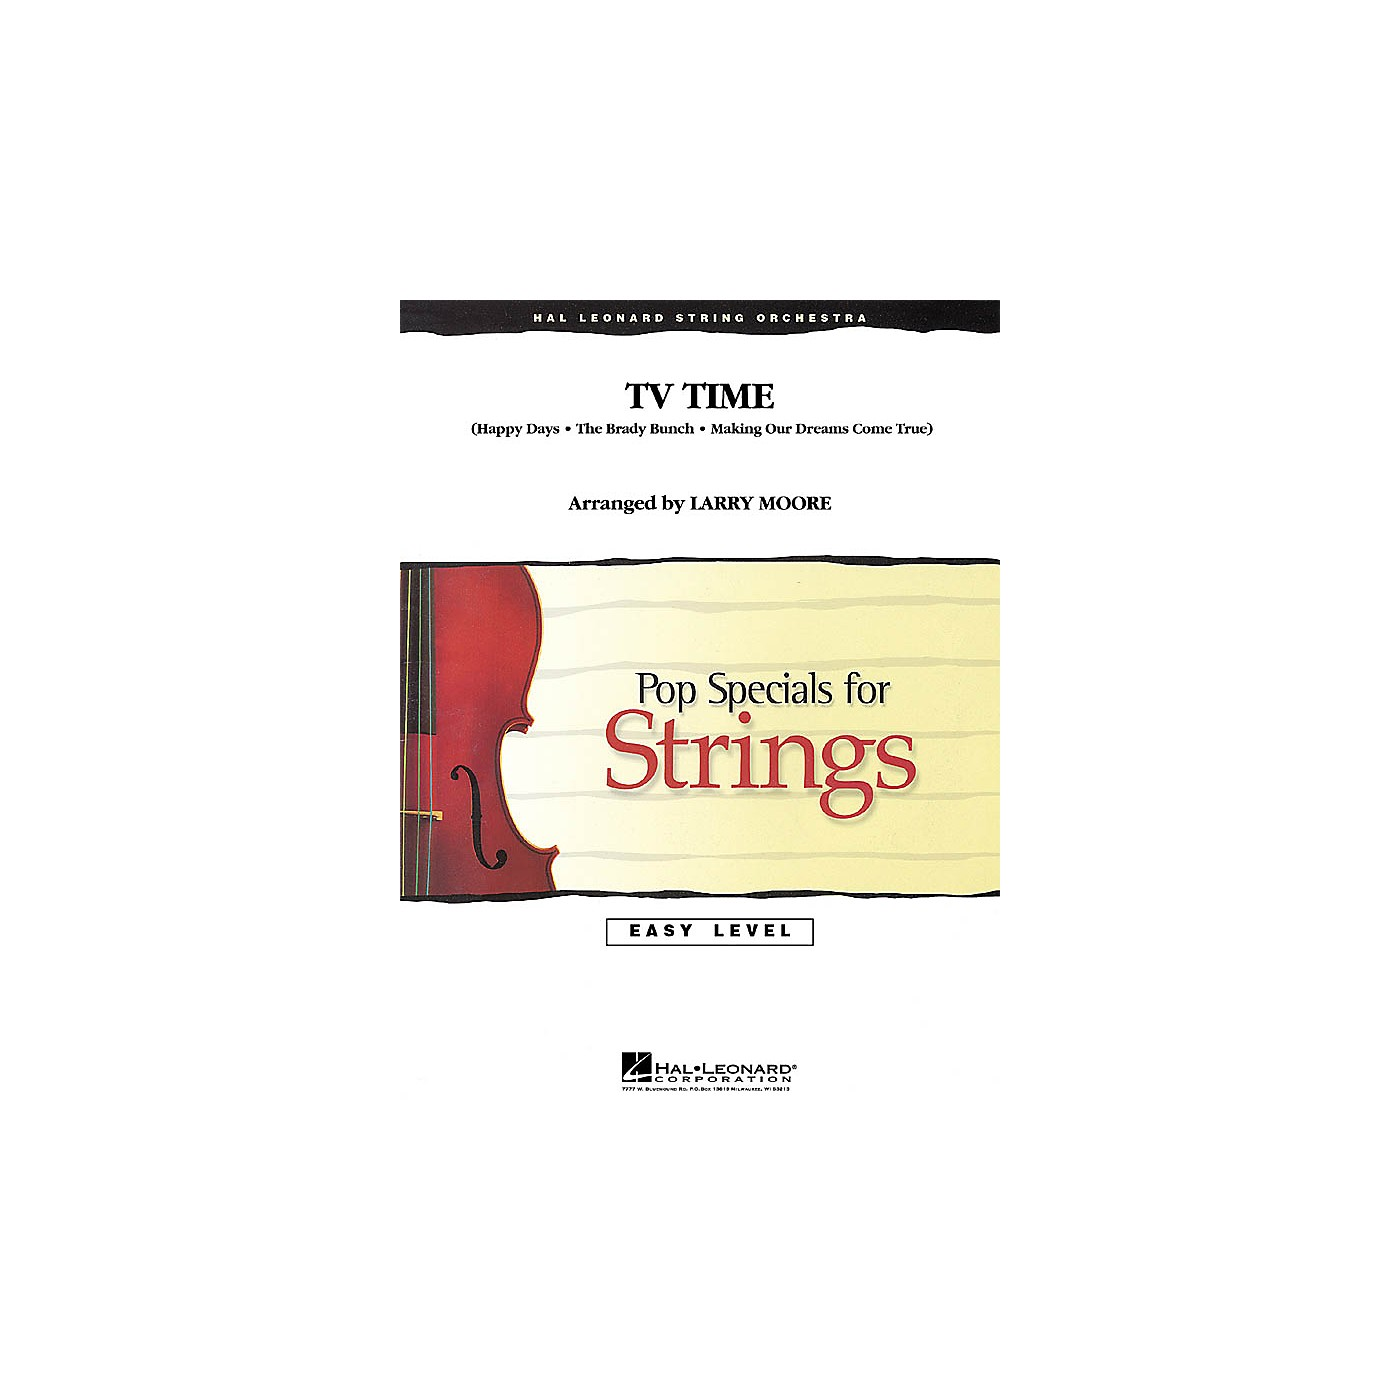 Hal Leonard TV Time Easy Pop Specials For Strings Series Softcover Arranged by Larry Moore thumbnail